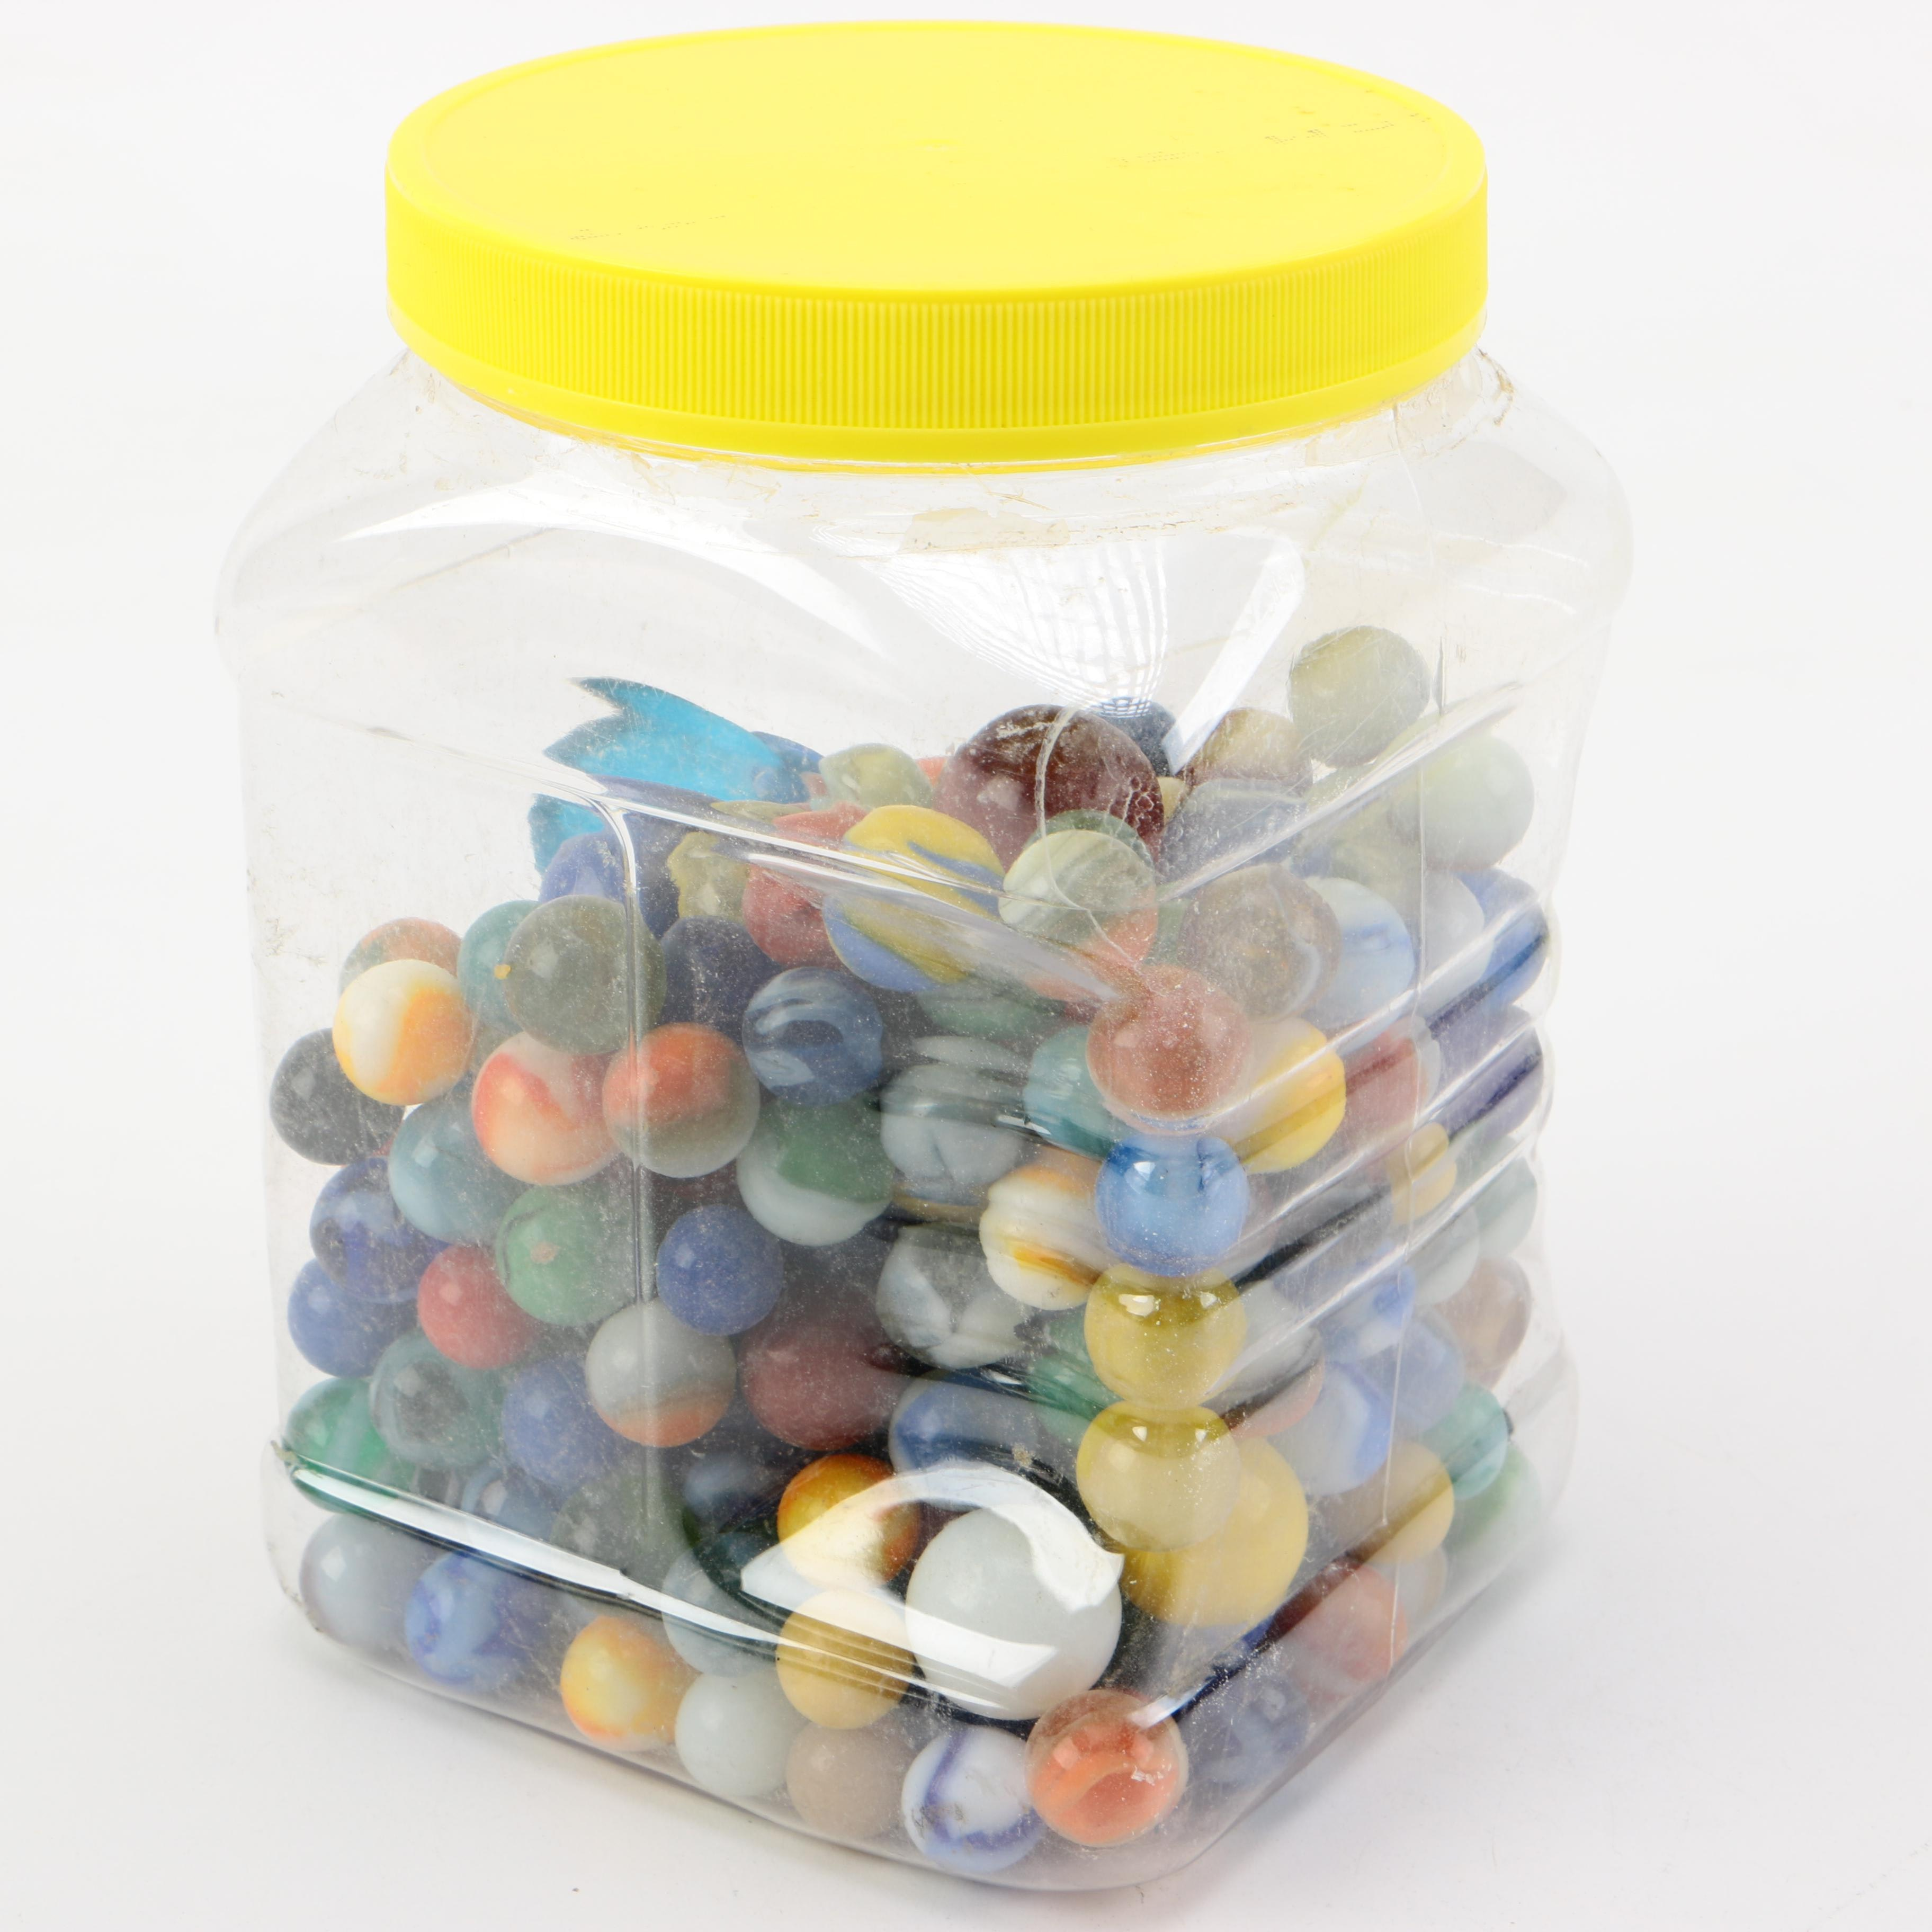 Container of Marbles